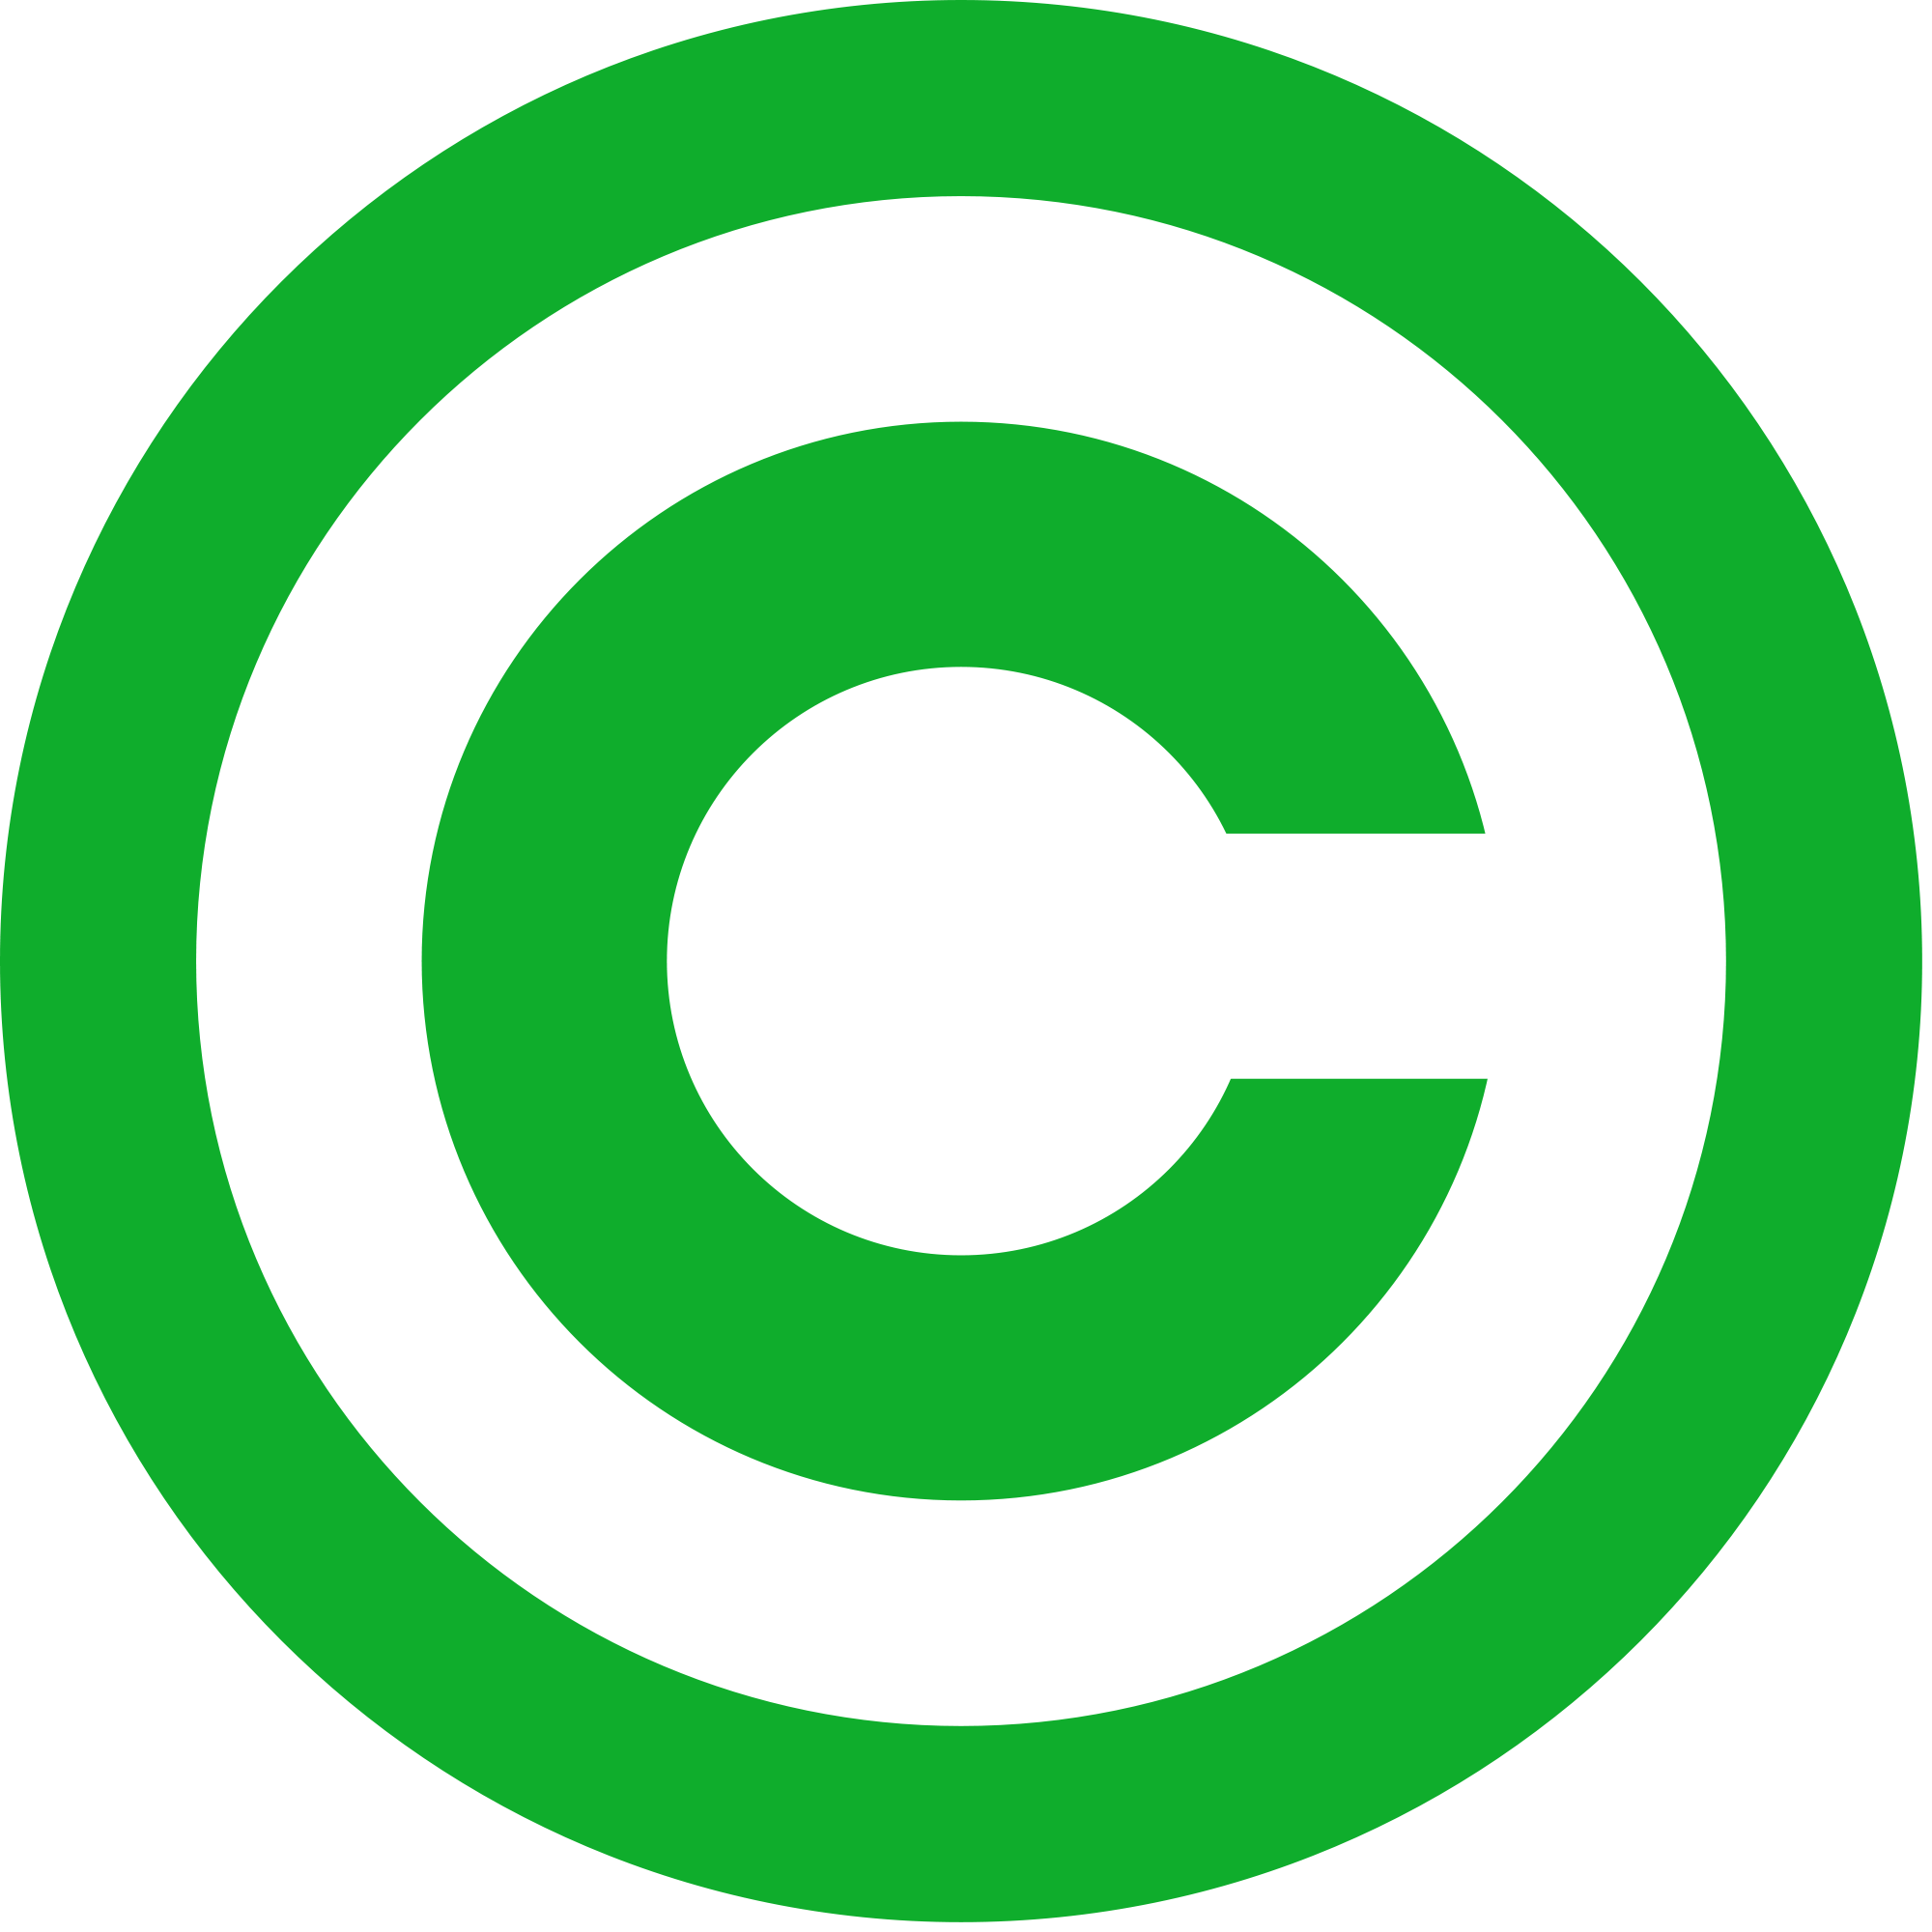 Copyright png image. File green wikimedia commons